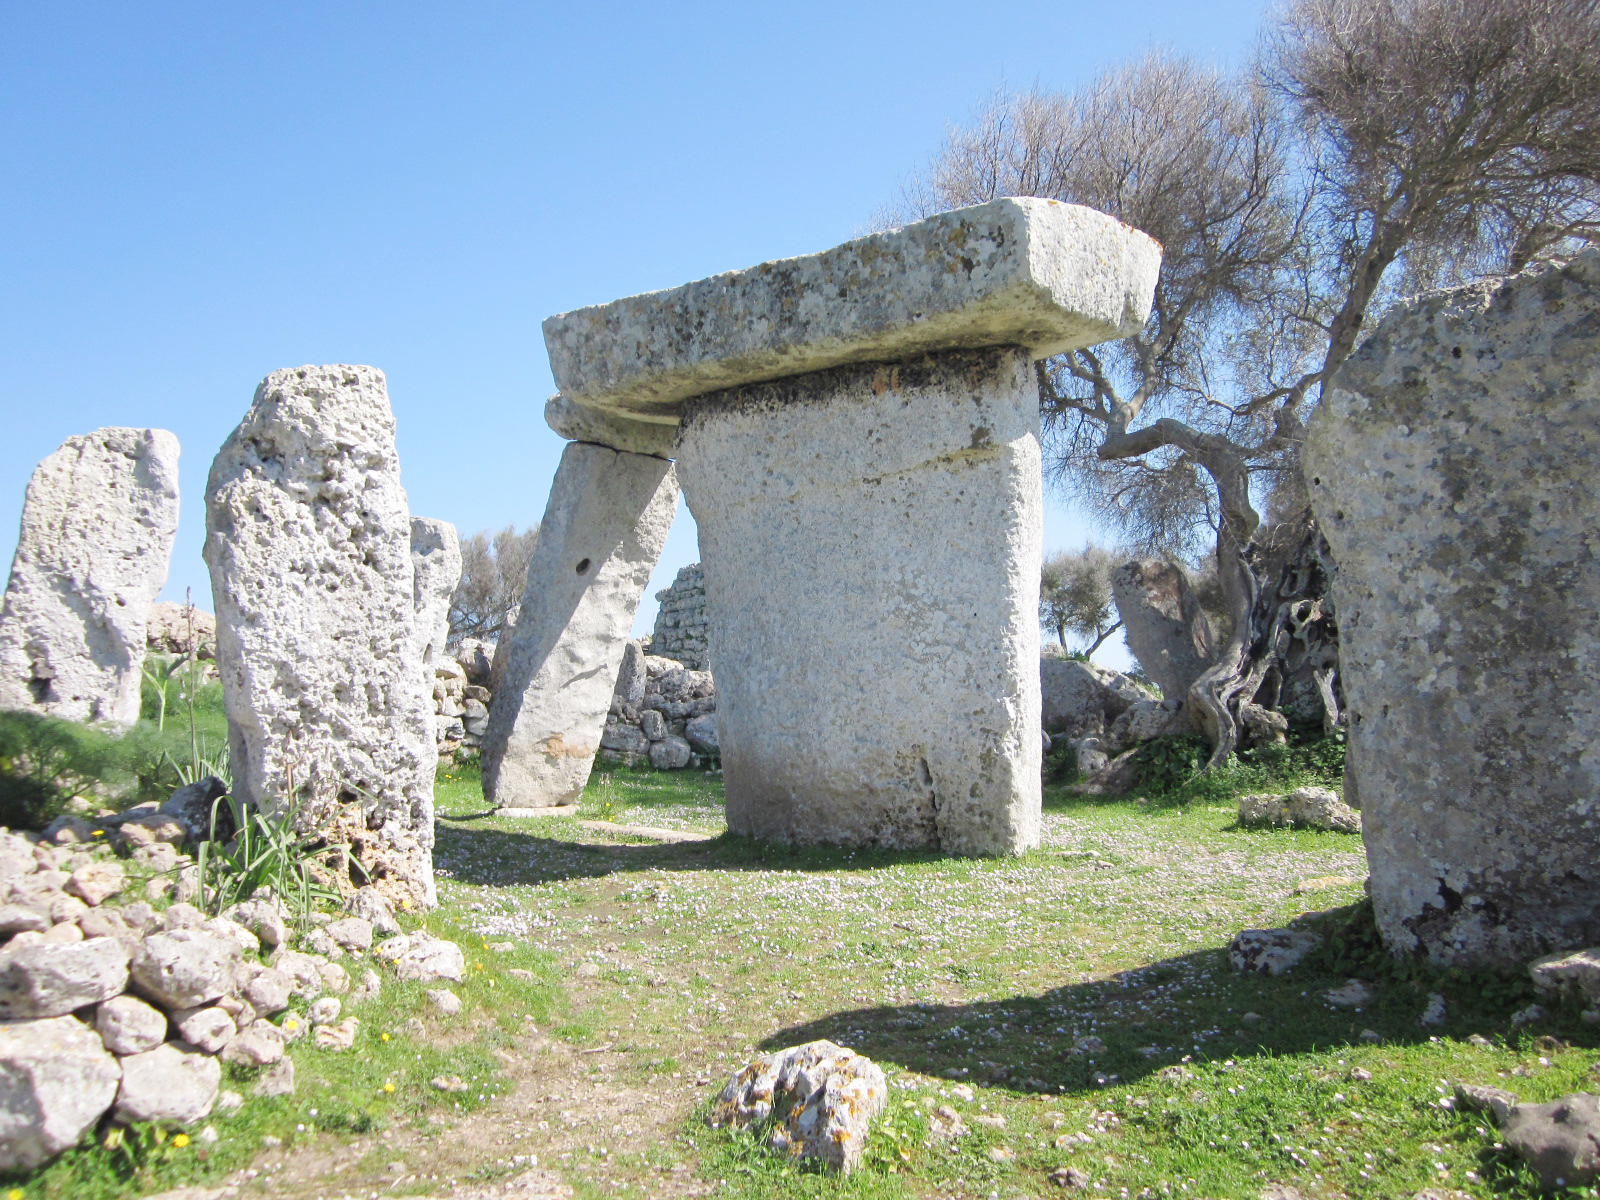 Freestanding Megaliths of Menorca